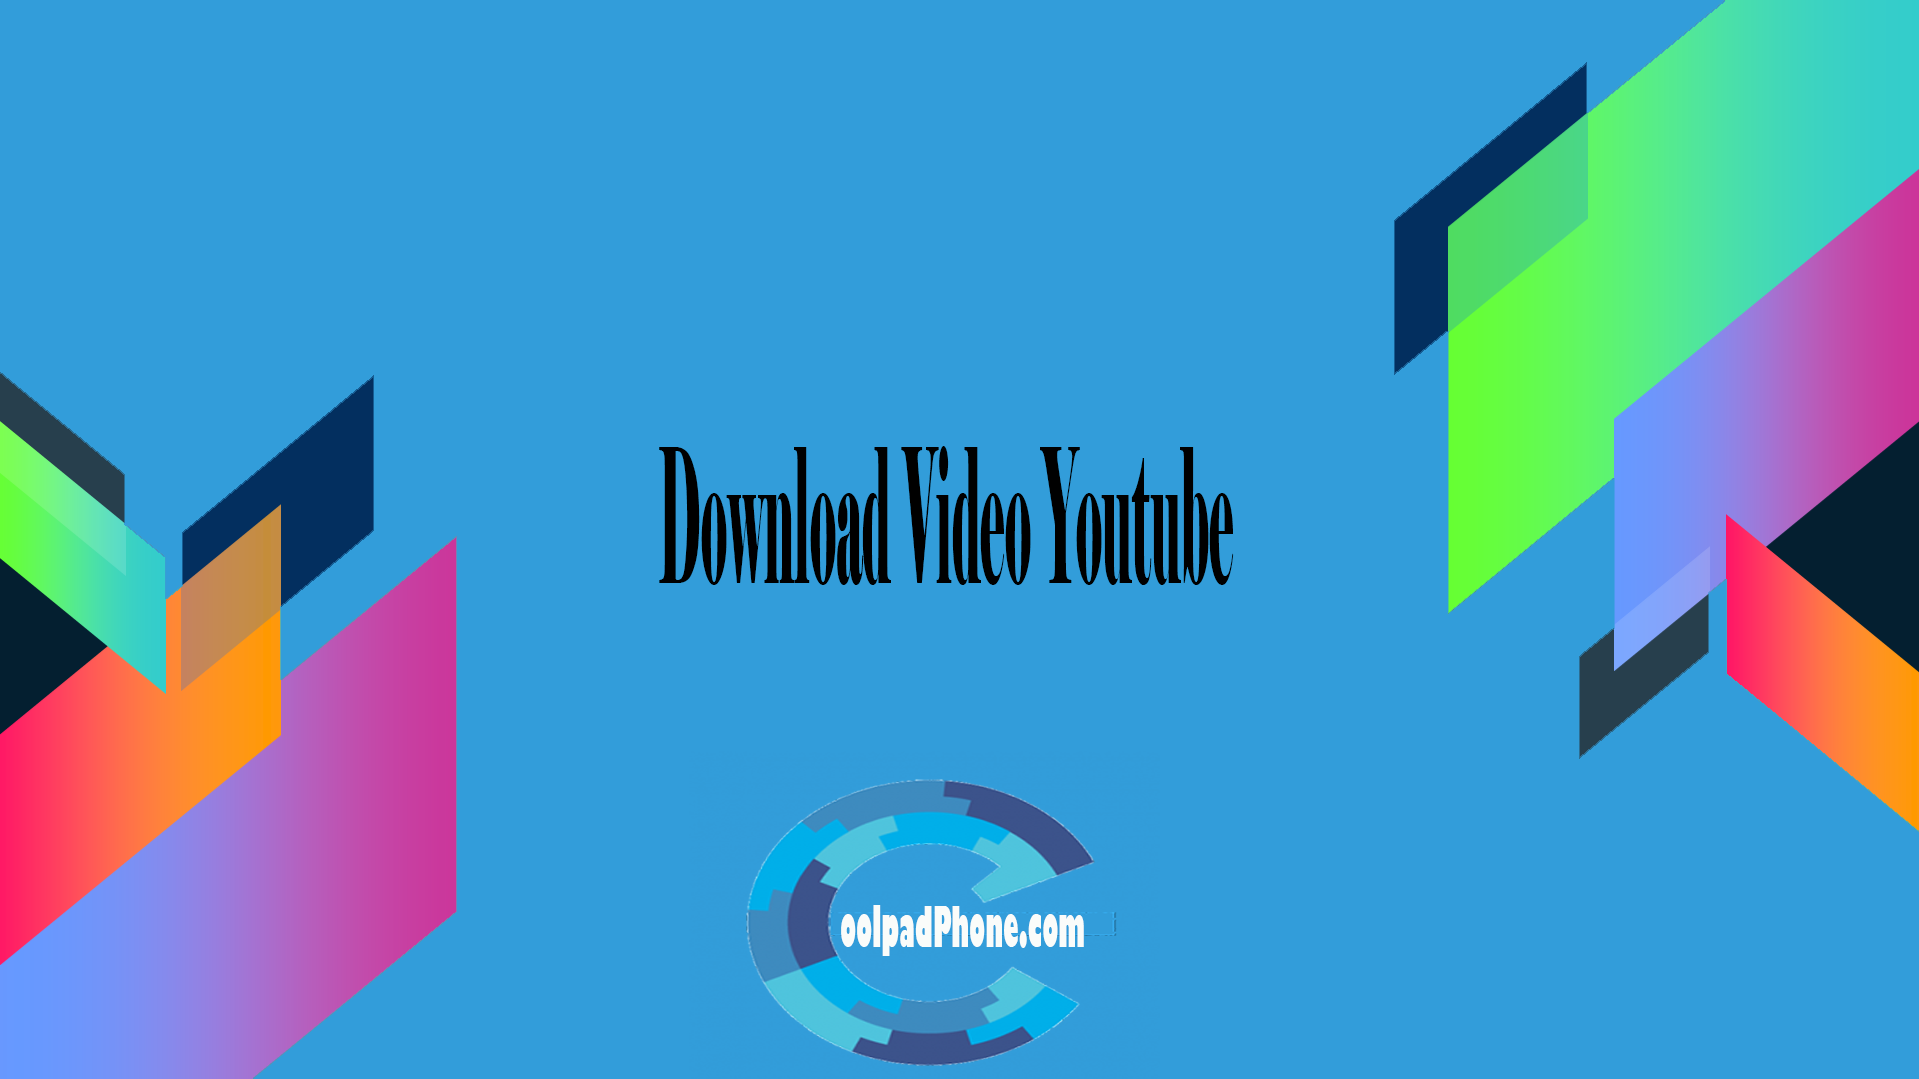 Download Video Youtube